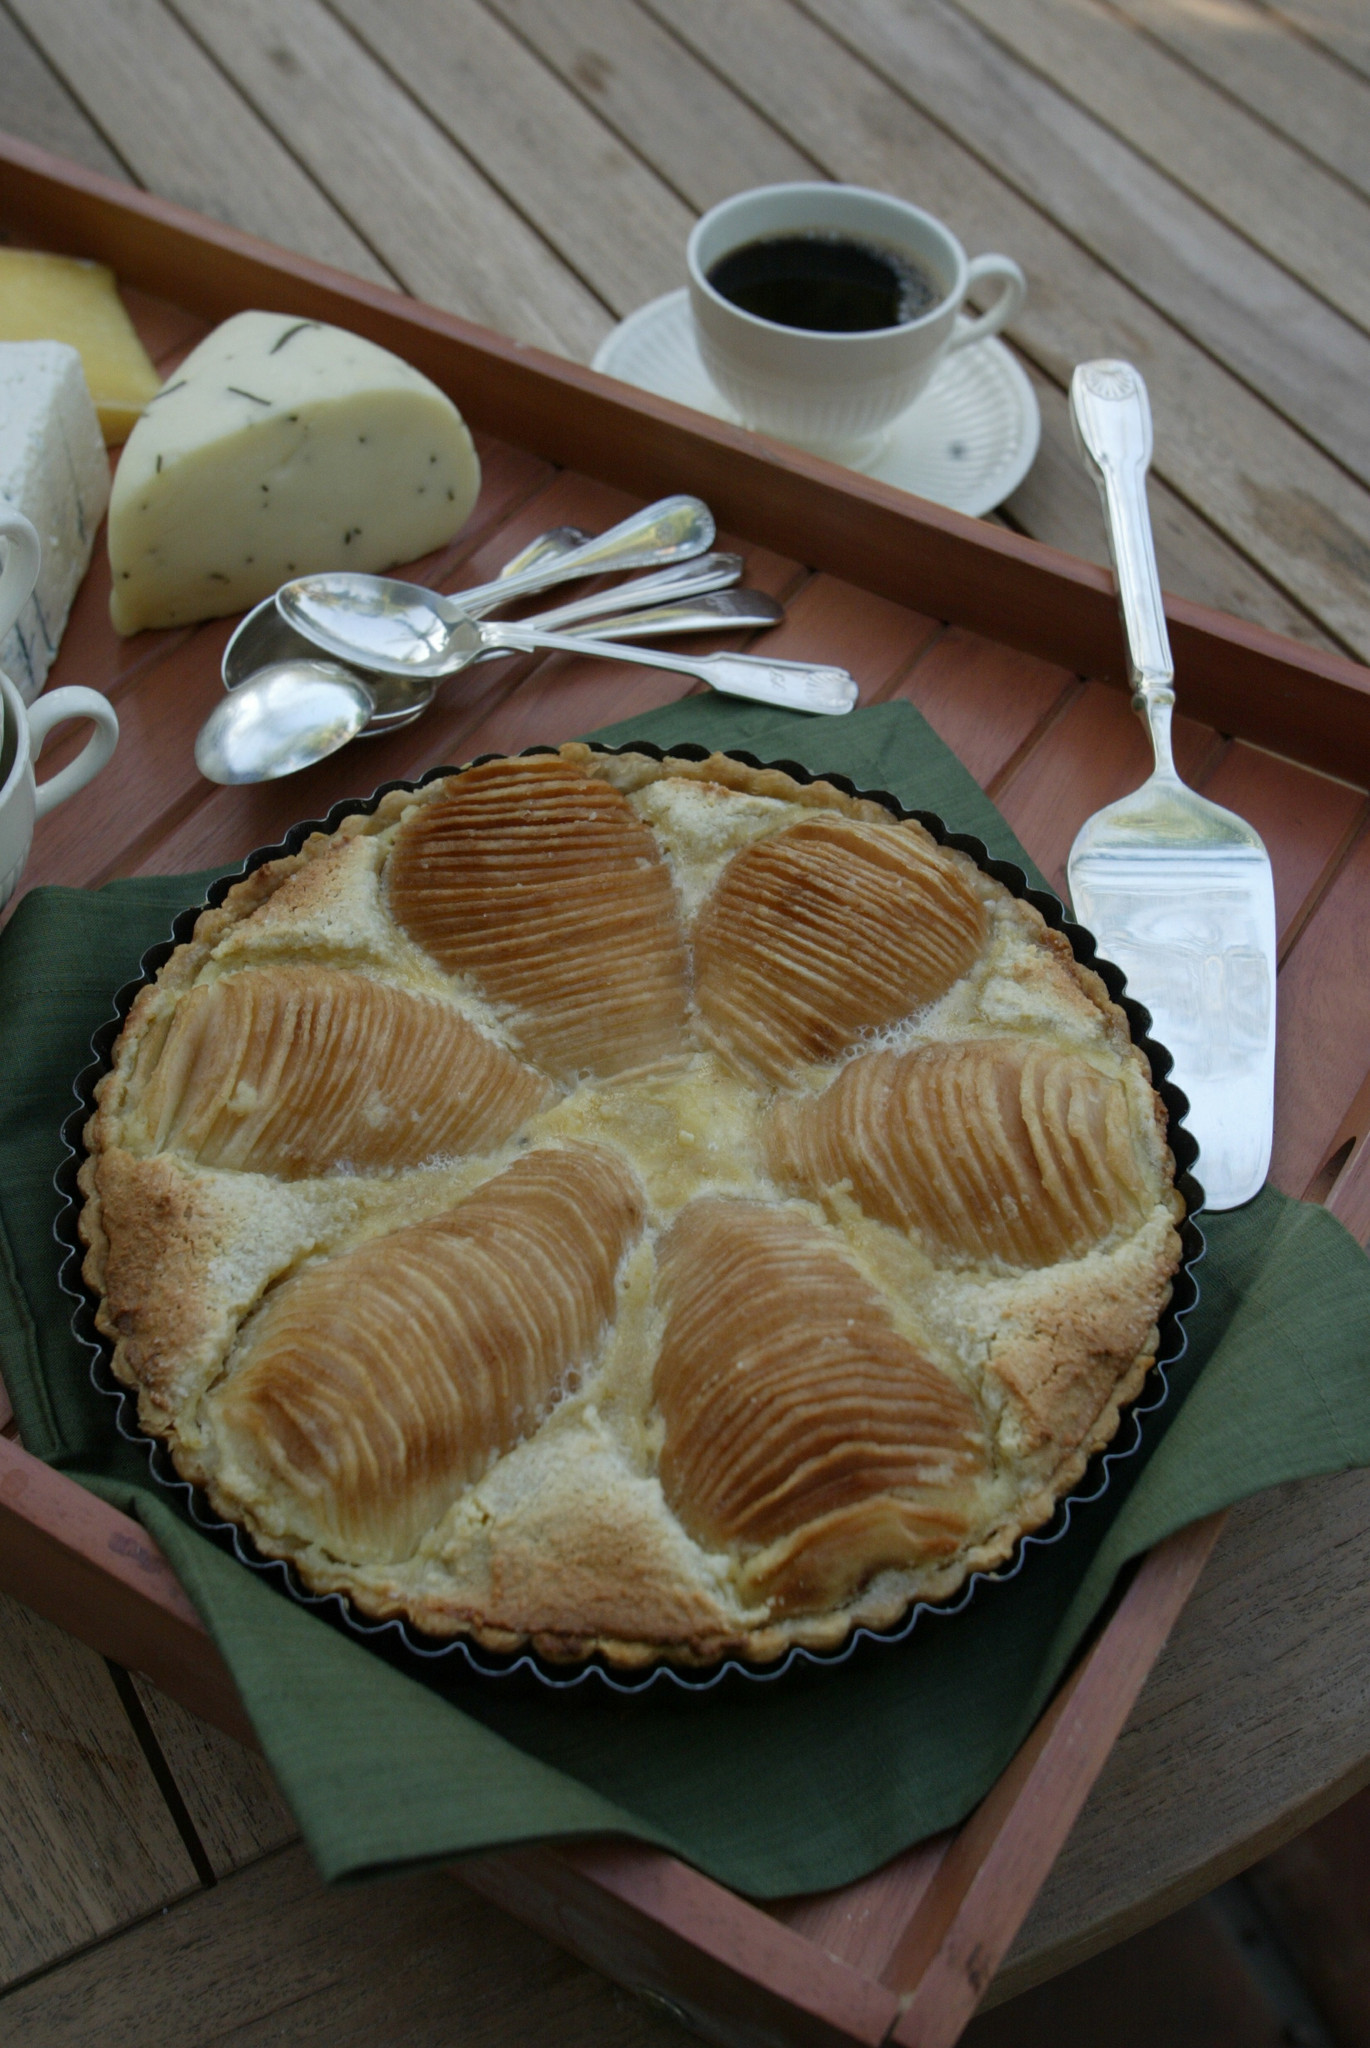 Photos: 97 great Thanksgiving recipes - Pear frangipane tart